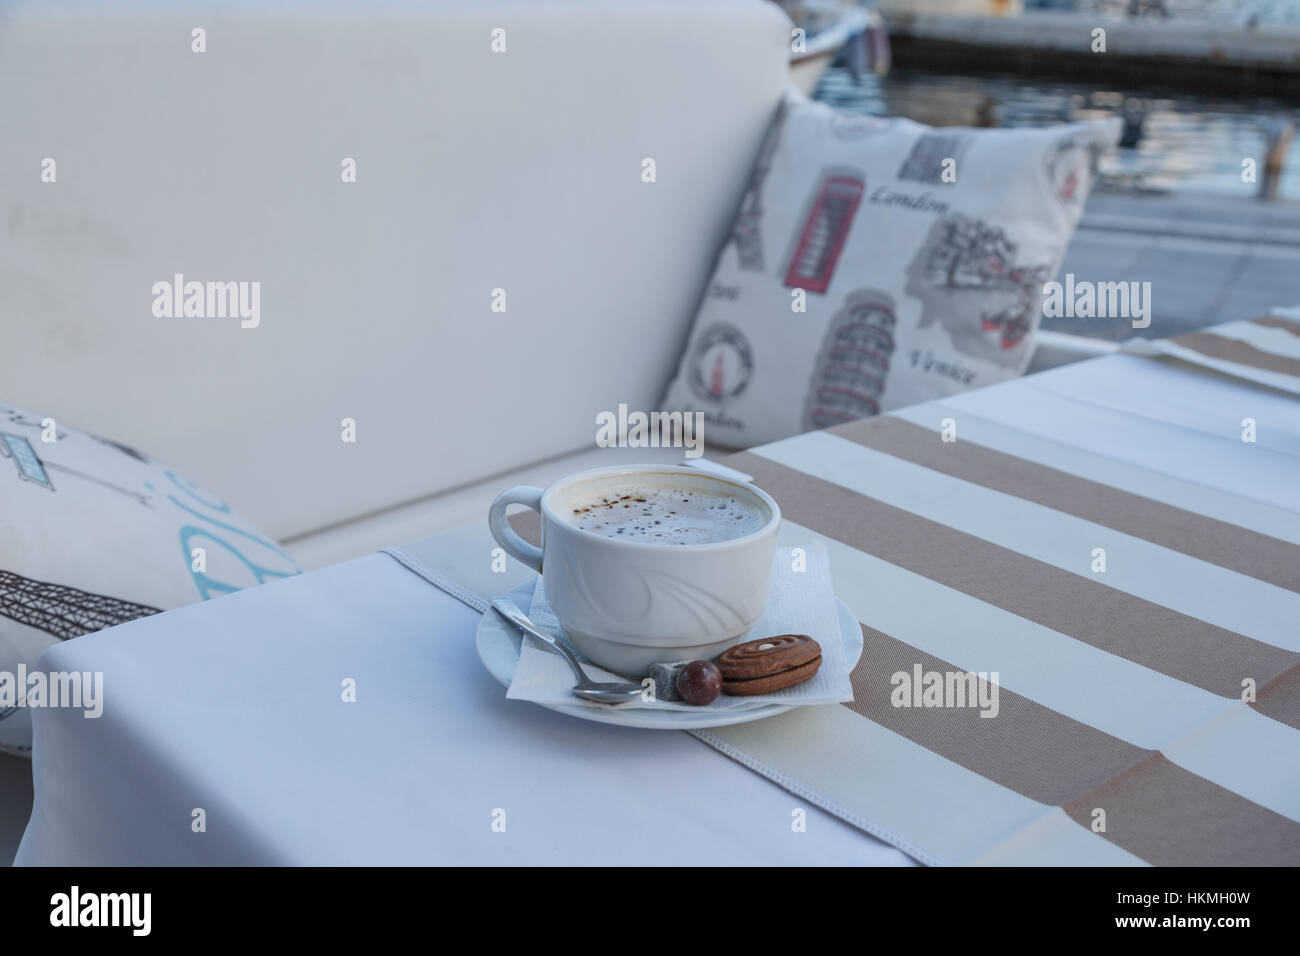 Coffee on the table near the seaside. - Stock Image